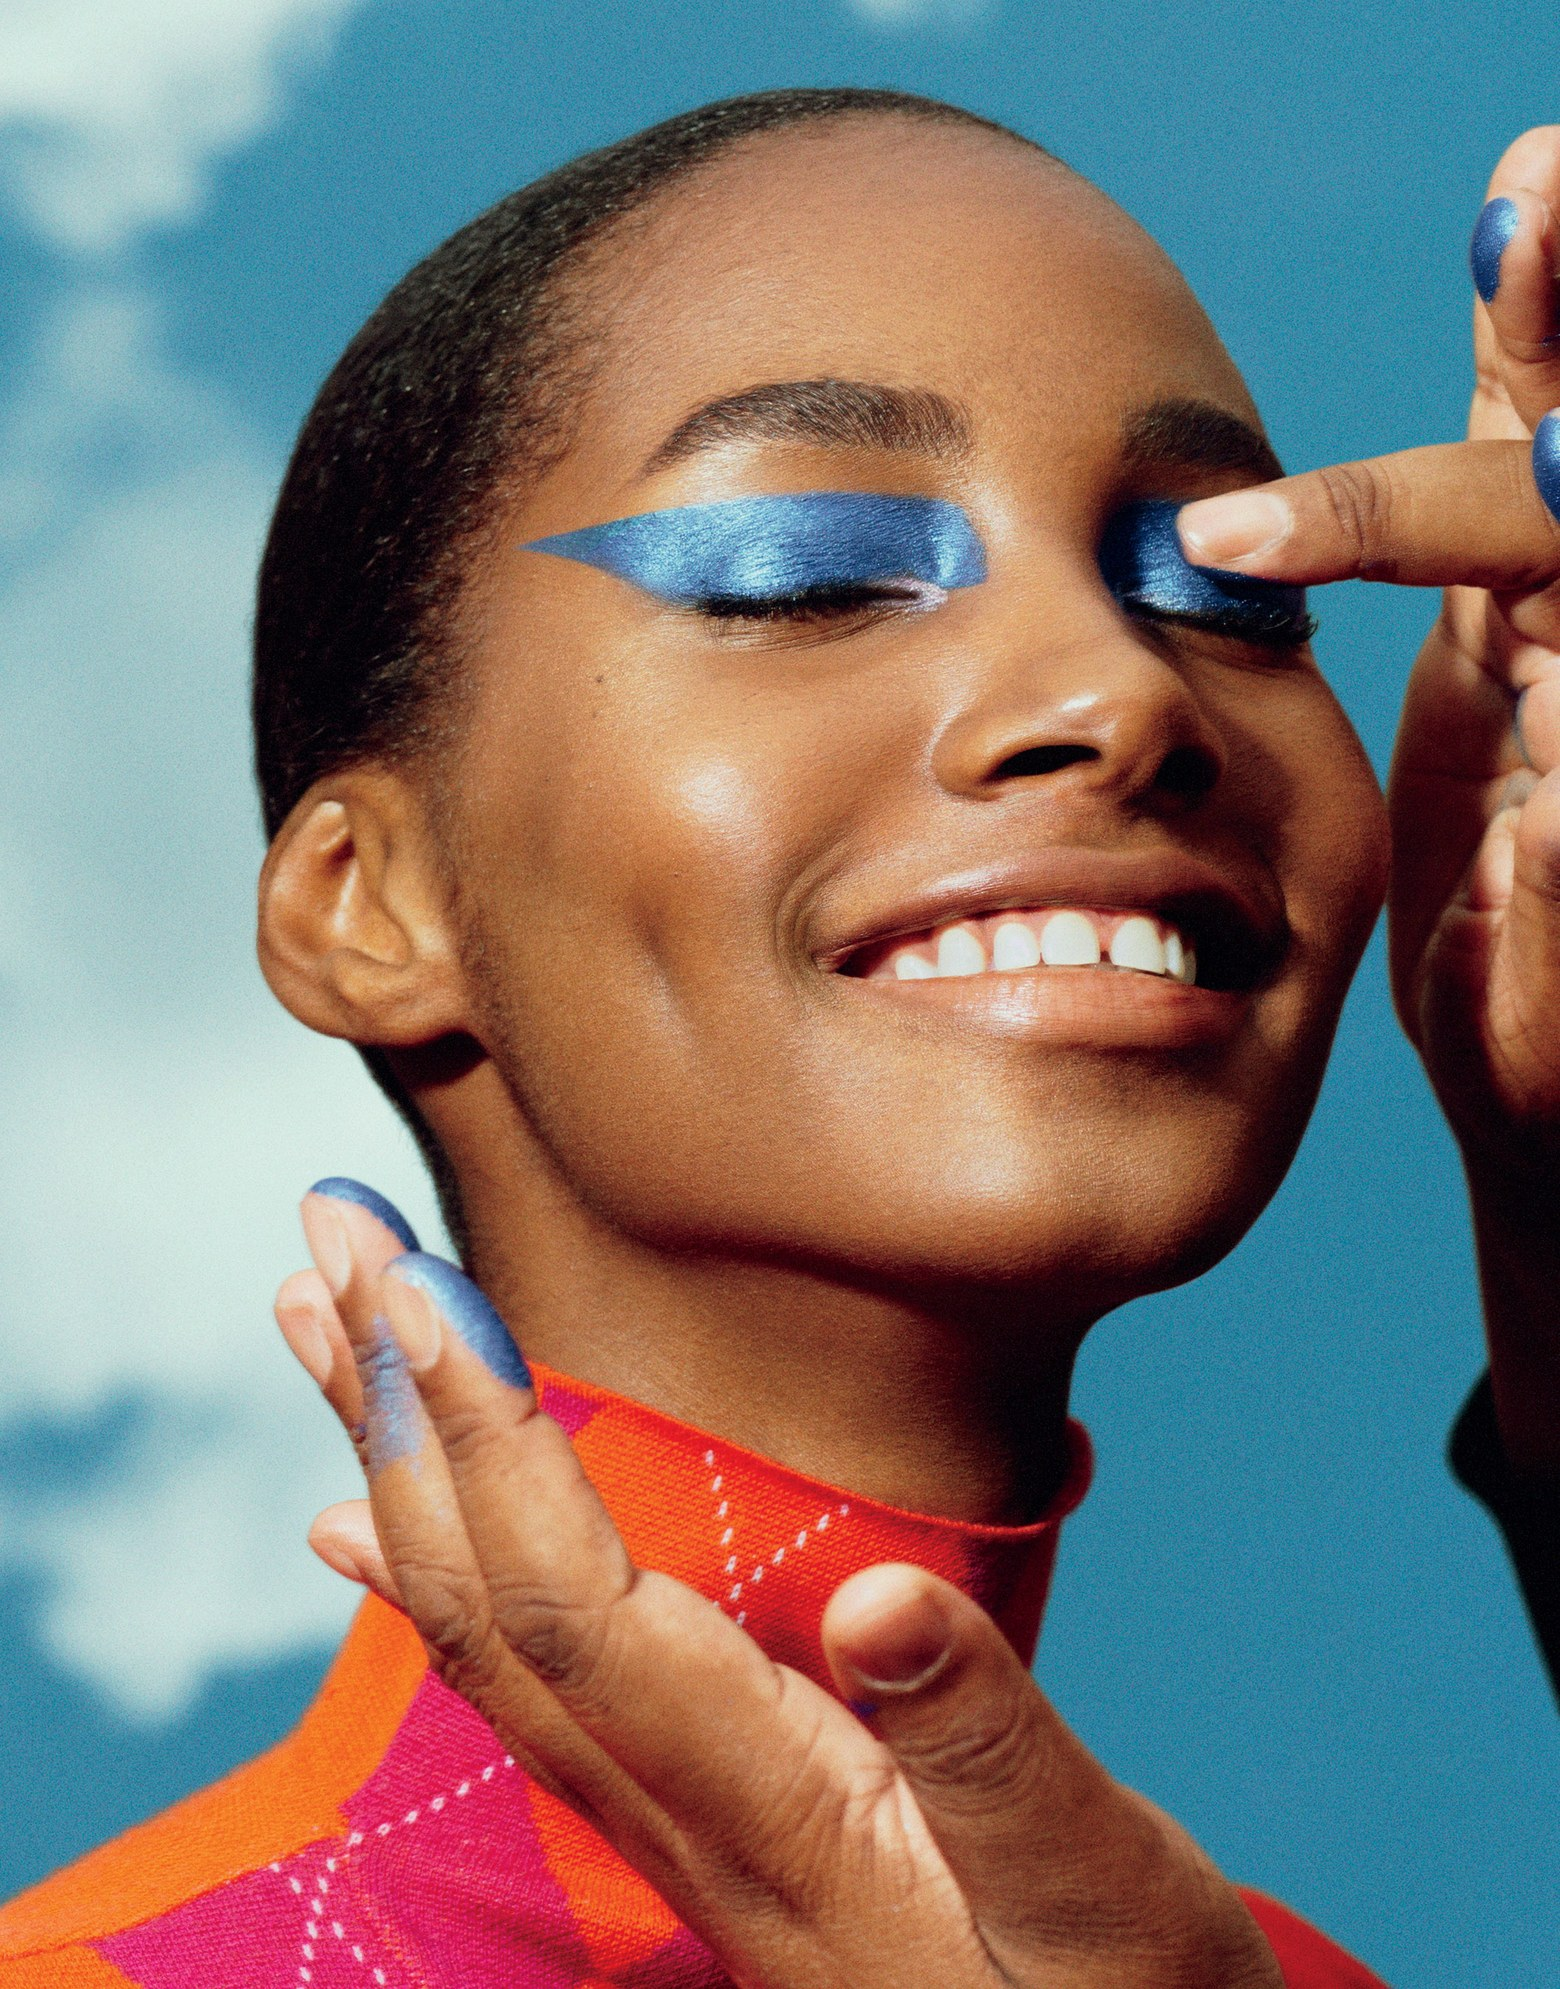 Discussion on this topic: Pat McGrath Launches Permanent Makeup Collection, pat-mcgrath-launches-permanent-makeup-collection/